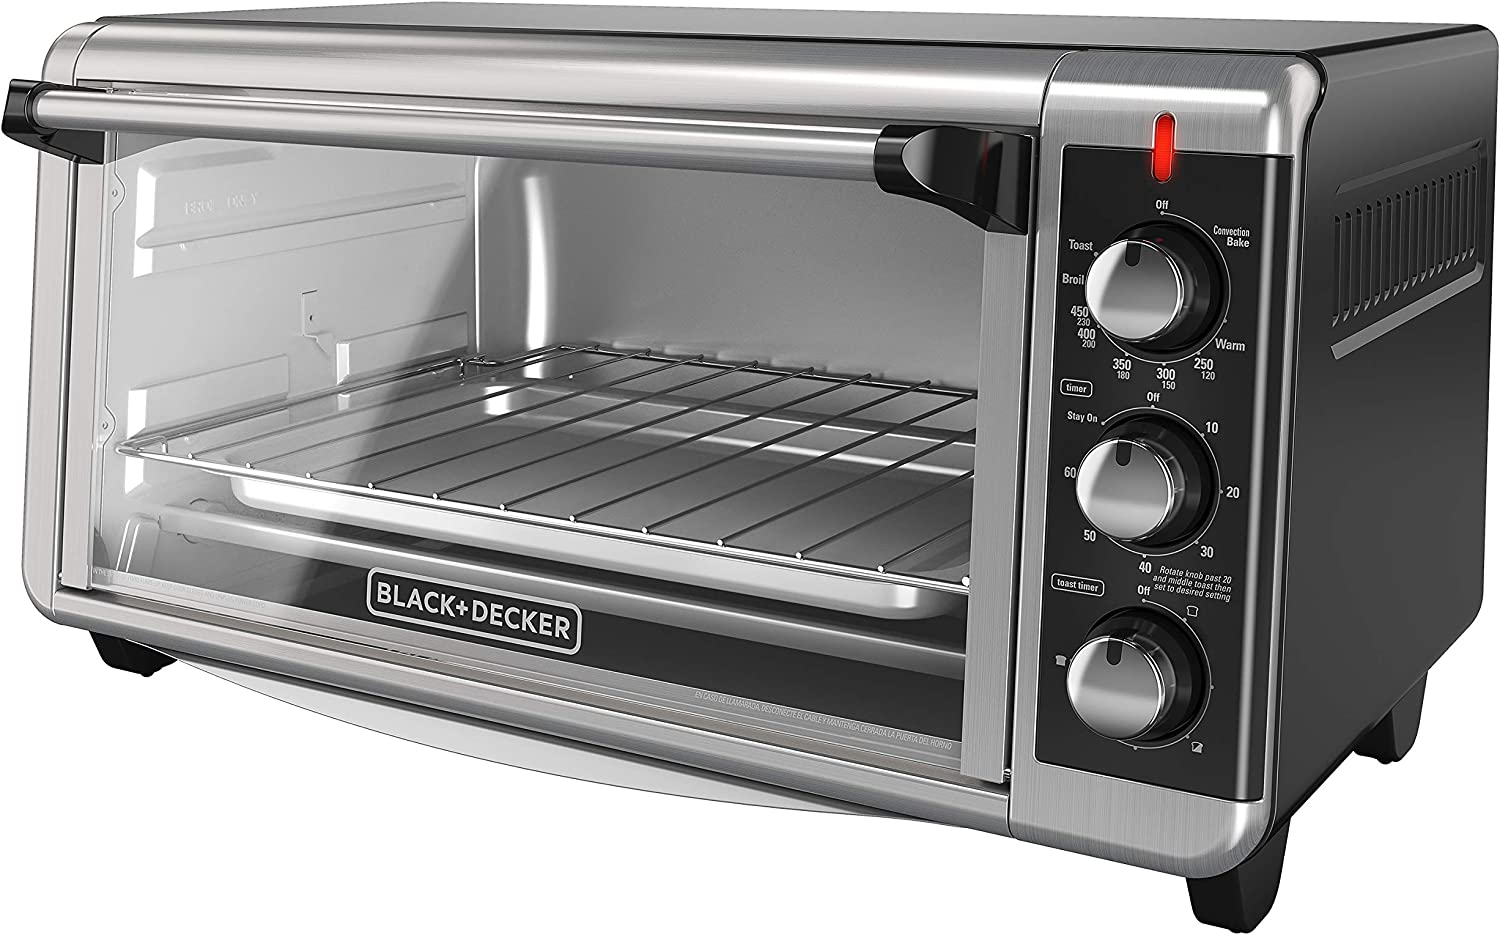 An affordable Countertop toaster Oven